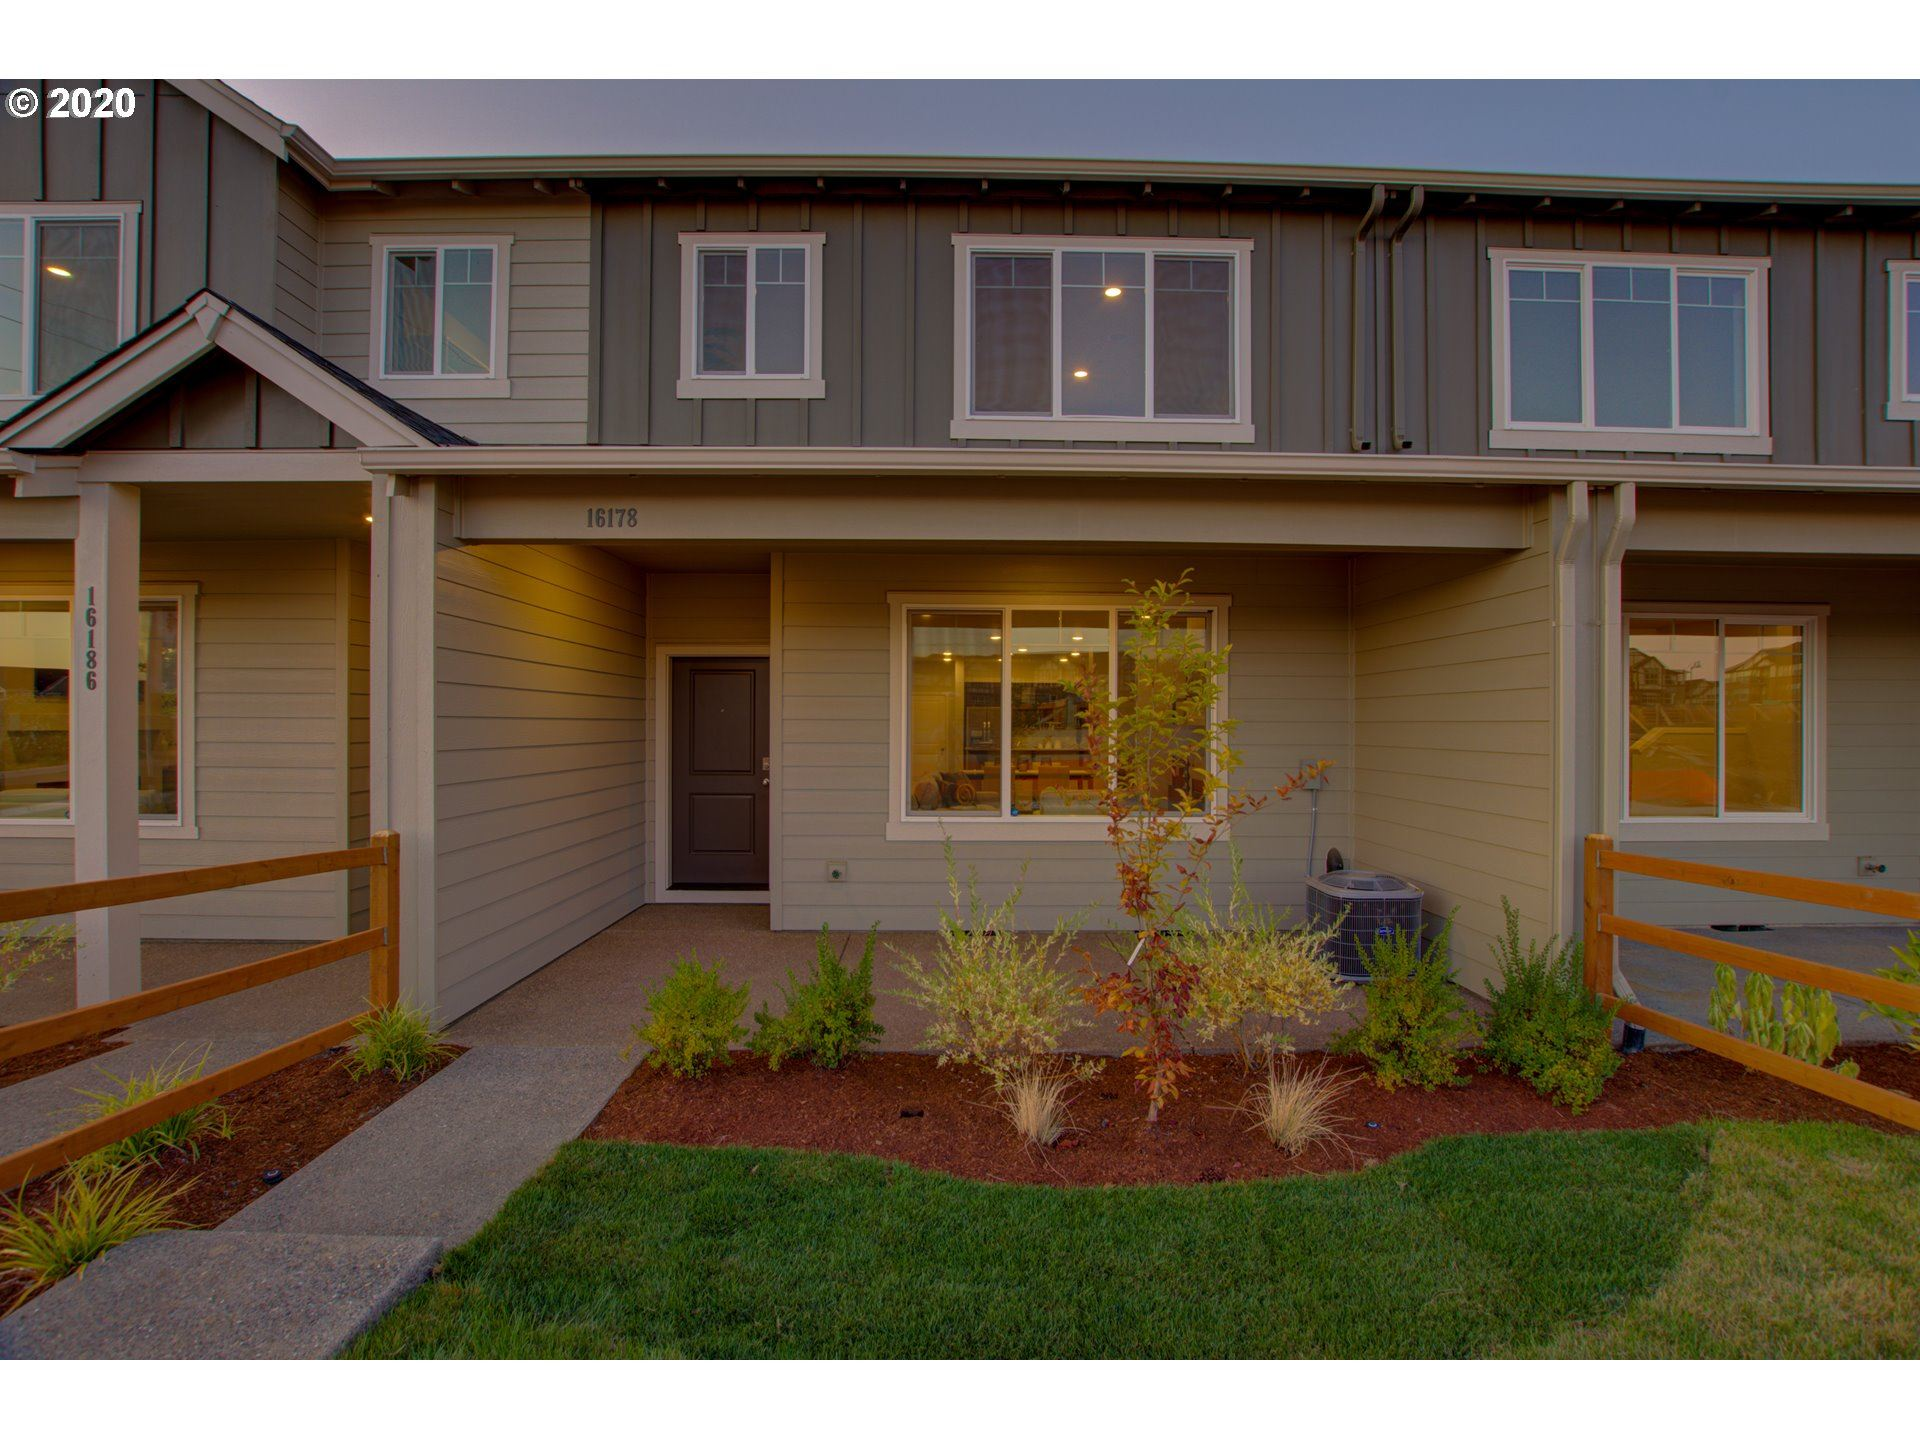 16165 NW RELIANCE LN #38, Portland, OR 97229 - MLS#: 20306853